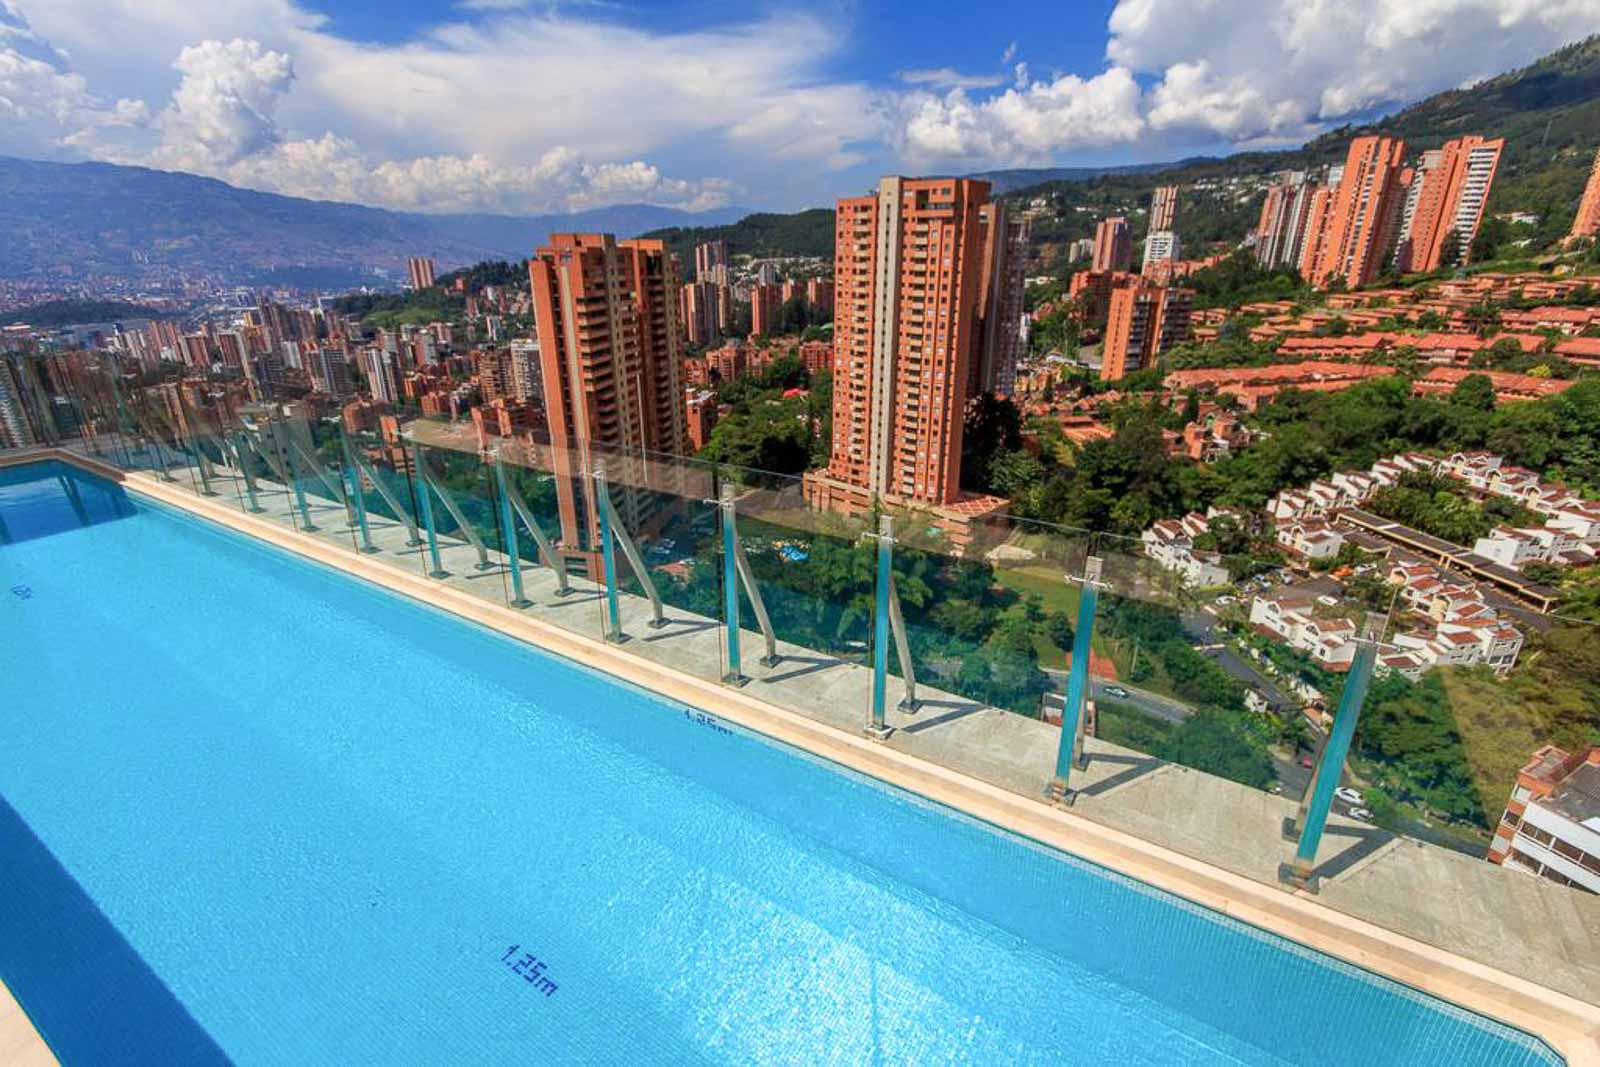 Where to stay in Medellin Honeymoon for Couples